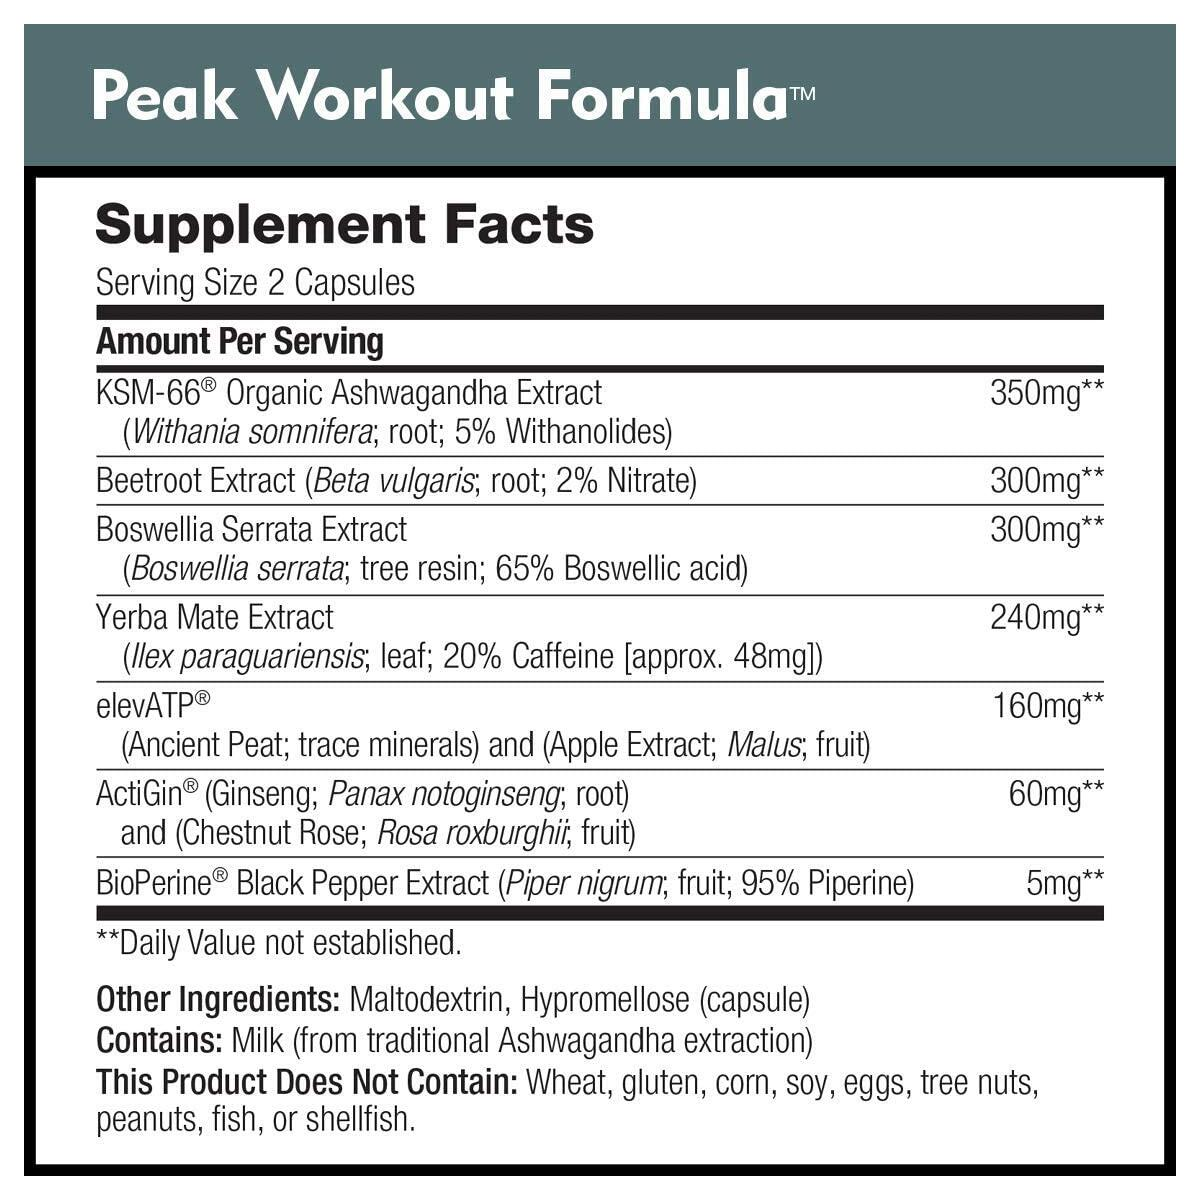 Peak Workout Formula by DailyNutra - Improved Motivation and Exercise Output   Pre-Workout and Recovery Supplement Featuring ActiGin, elevATP, Yerba Mate, Beet Root (90 Capsules)